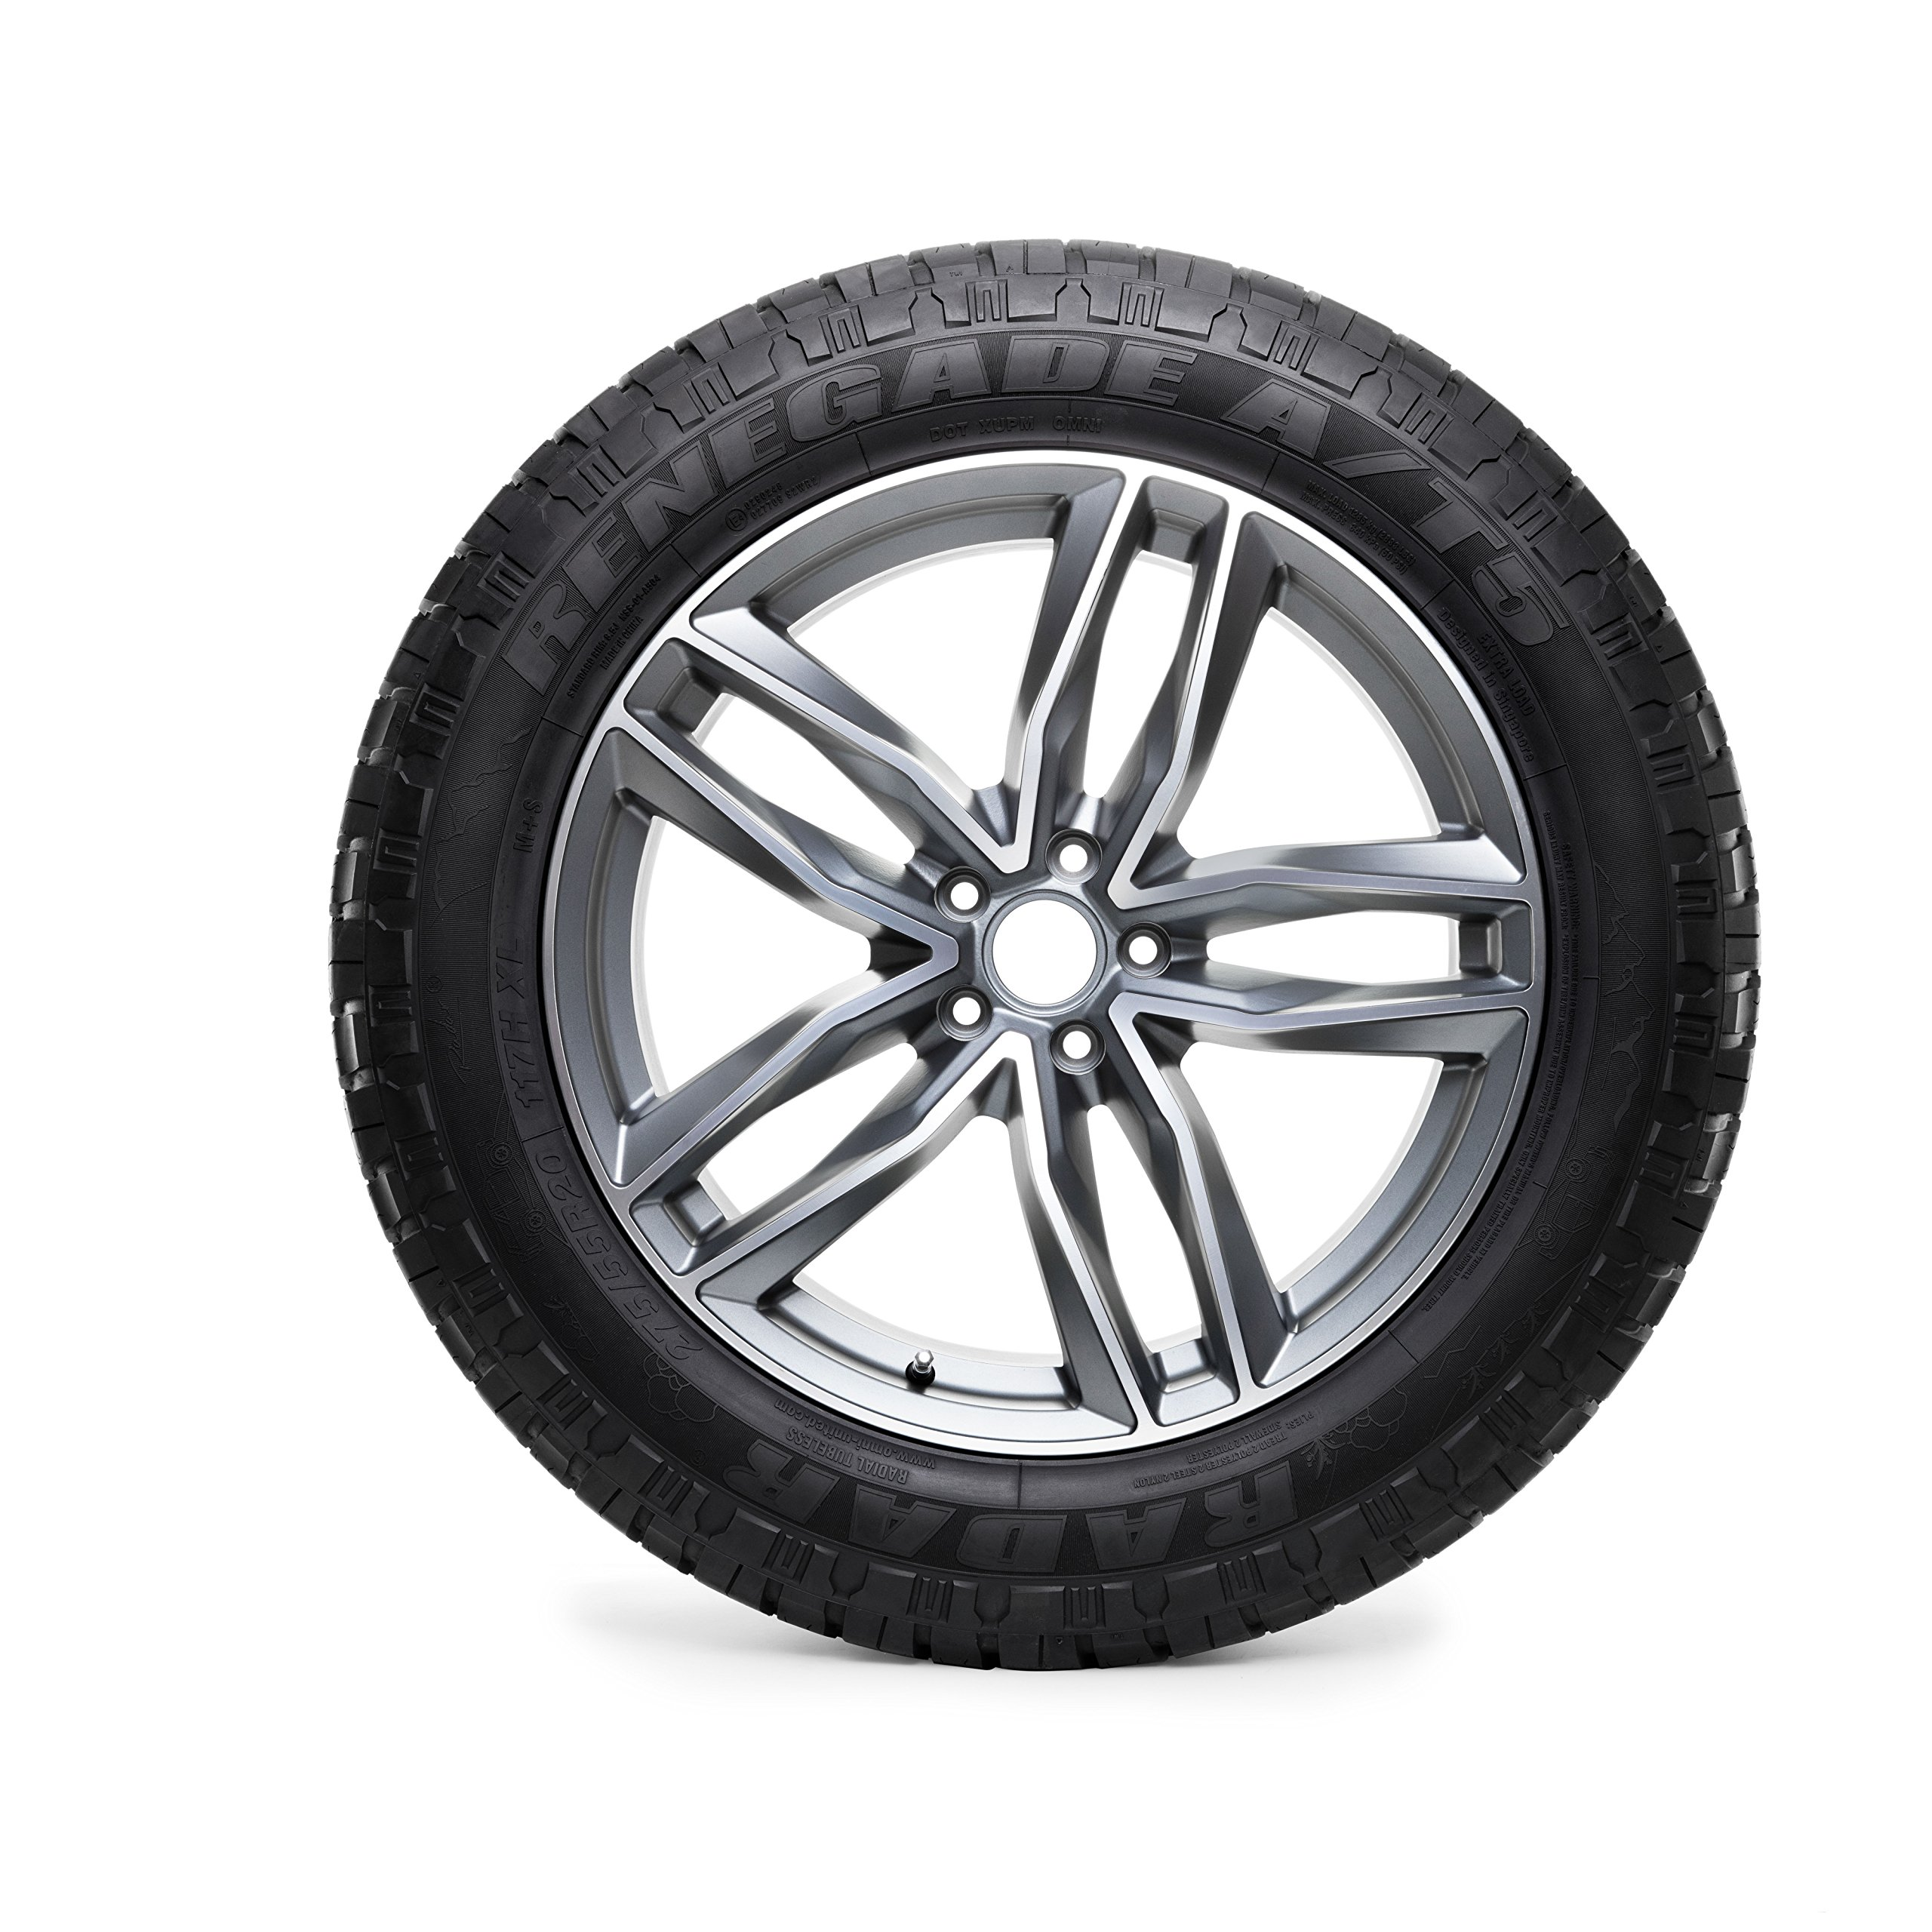 Radar Renegade A/T5 All-Terrain Radial Tire - 265/50R20 112V by Radar (Image #4)